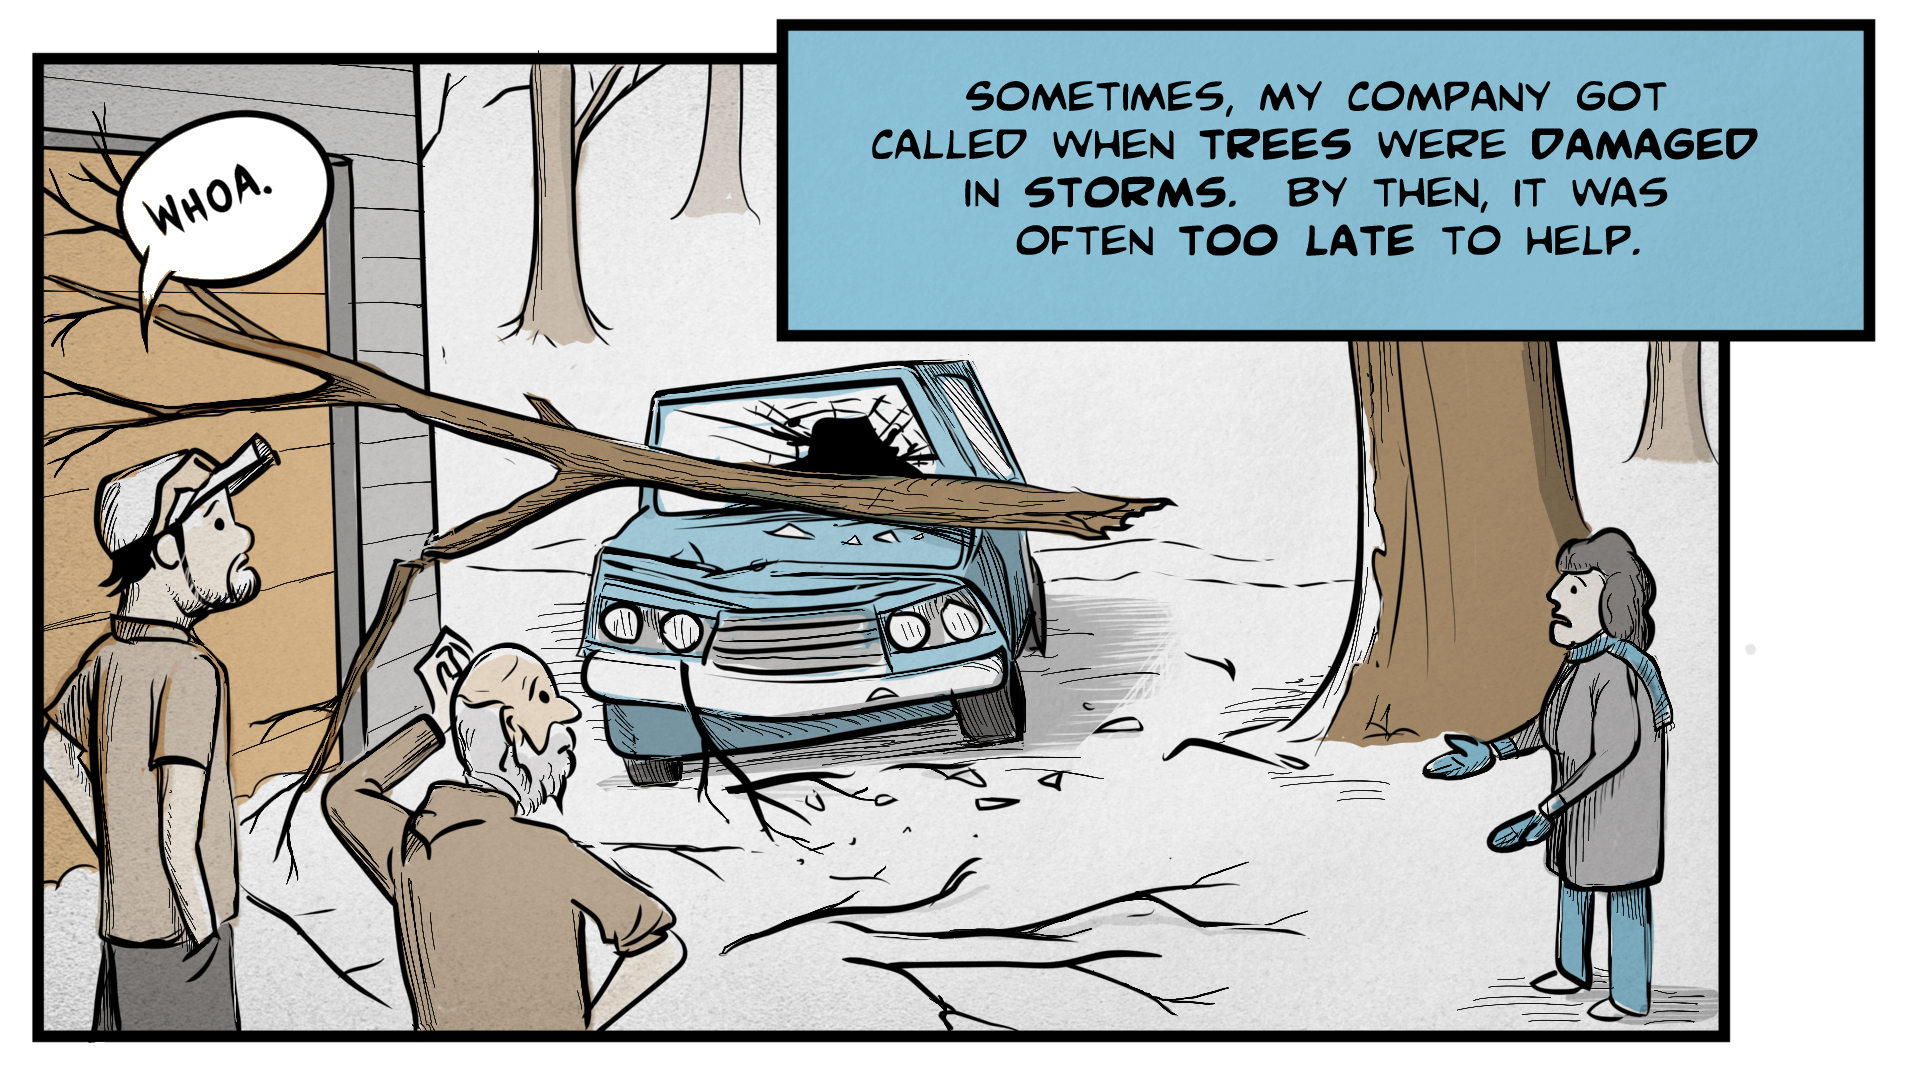 "Danny, the narrator, says, ""Sometimes, my company got called when trees were damaged in storms. By then, it was often too late to help."" A large tree branch sits on top of the hood of a car. The hood is badly dented and the windshield is cracked and broken. The car's owners stand nearby, distraut and dismayed. Danny looks on and says, ""Whoa."""